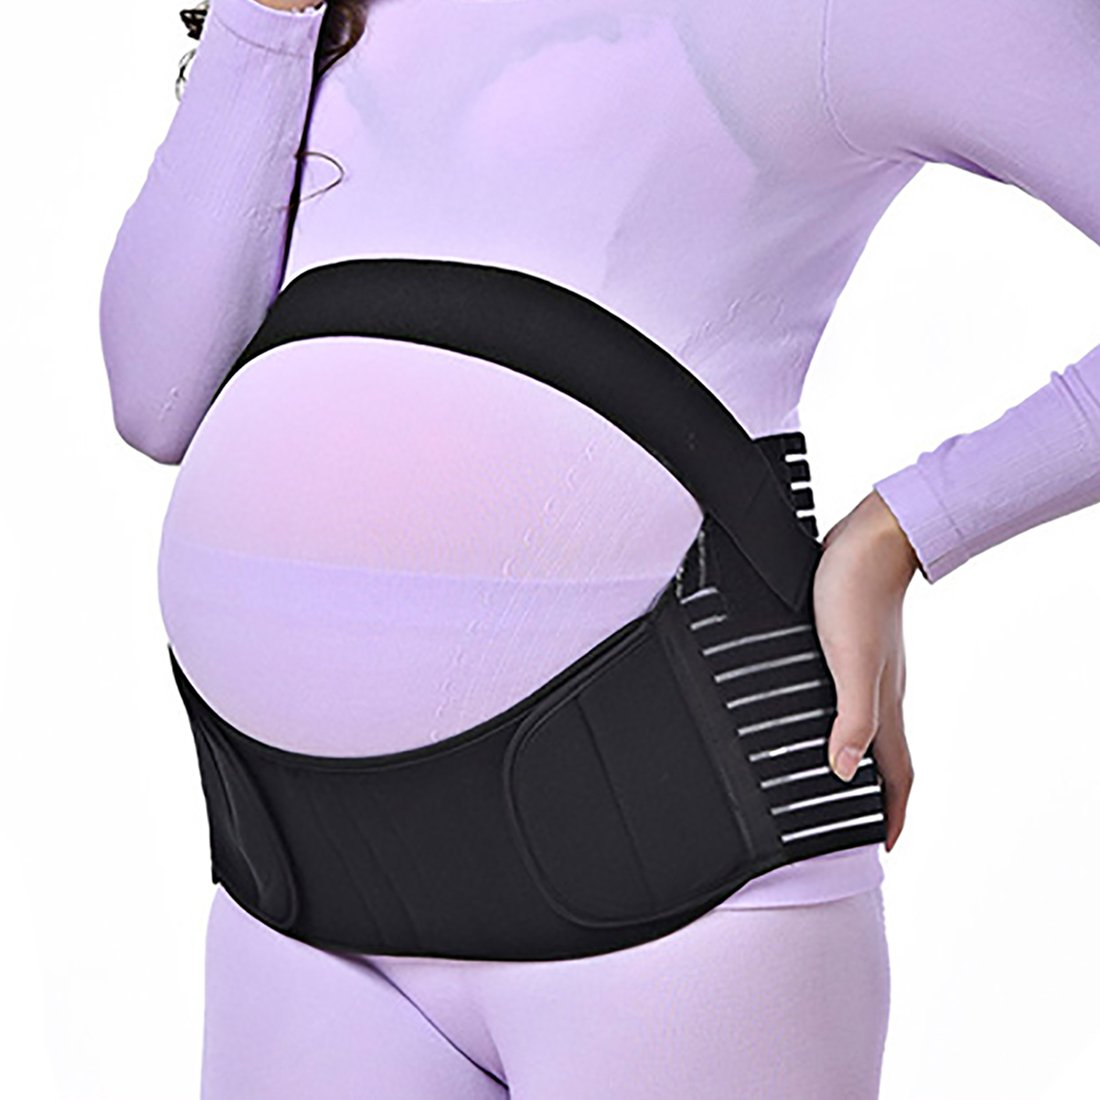 Pregnancy Belly Support Band Breathable Hip Pelvic Lumbar and Lower Back Pain Relief Belt Brace Size Medium